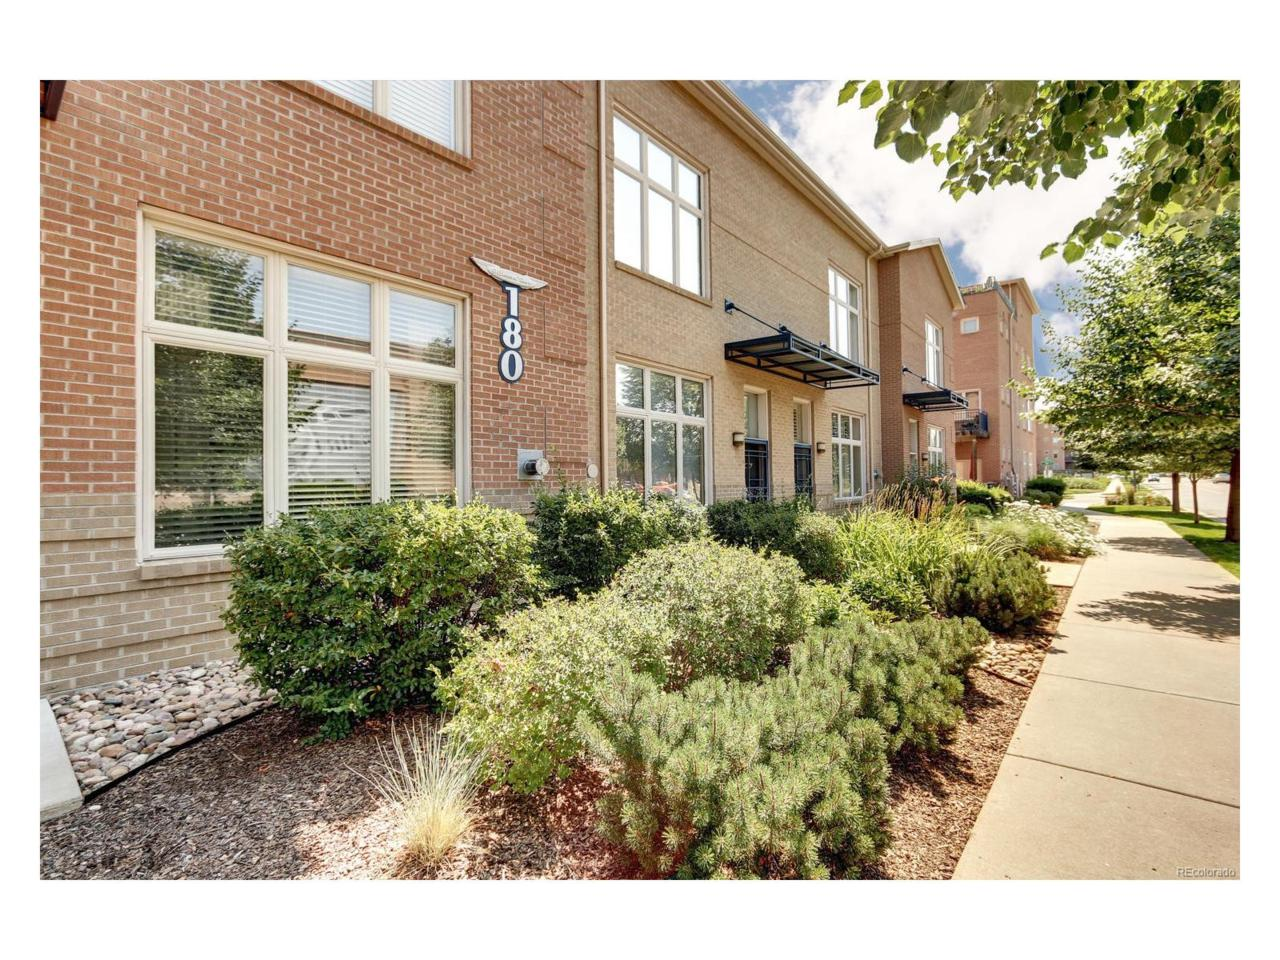 180 Roslyn Street #1206, Denver, CO 80230 (MLS #4193997) :: 8z Real Estate